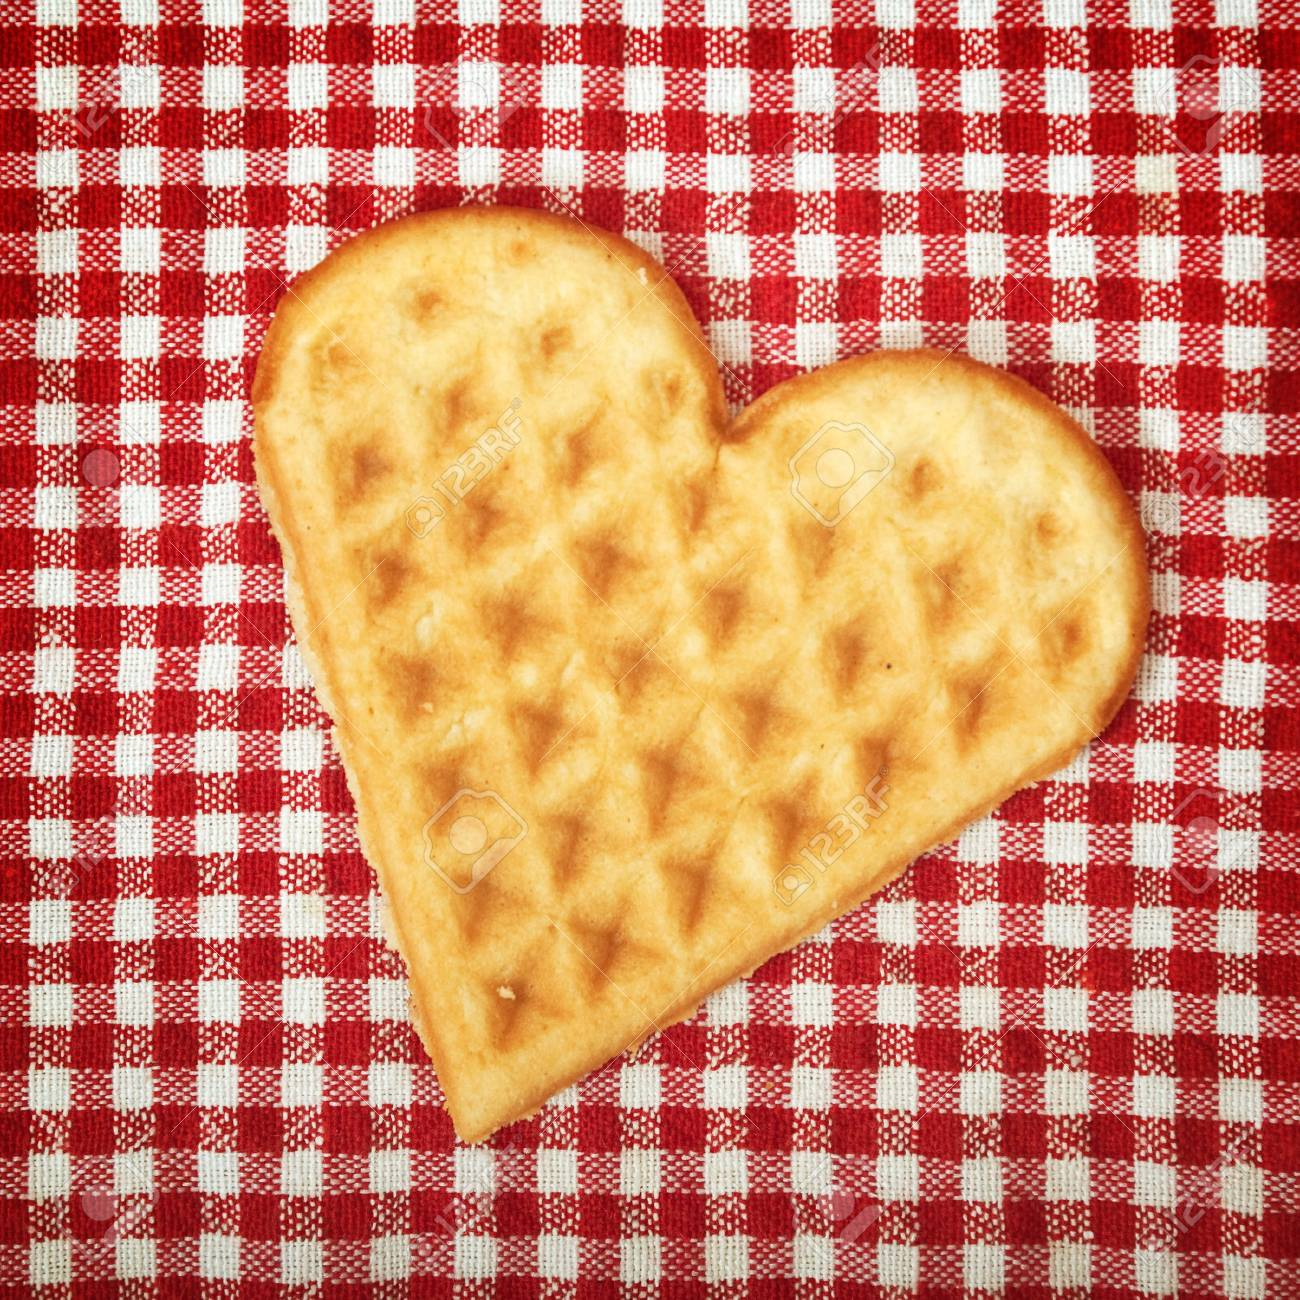 Heart shaped galette cookie on red and white checkered table cloth Stock Photo - 17101990